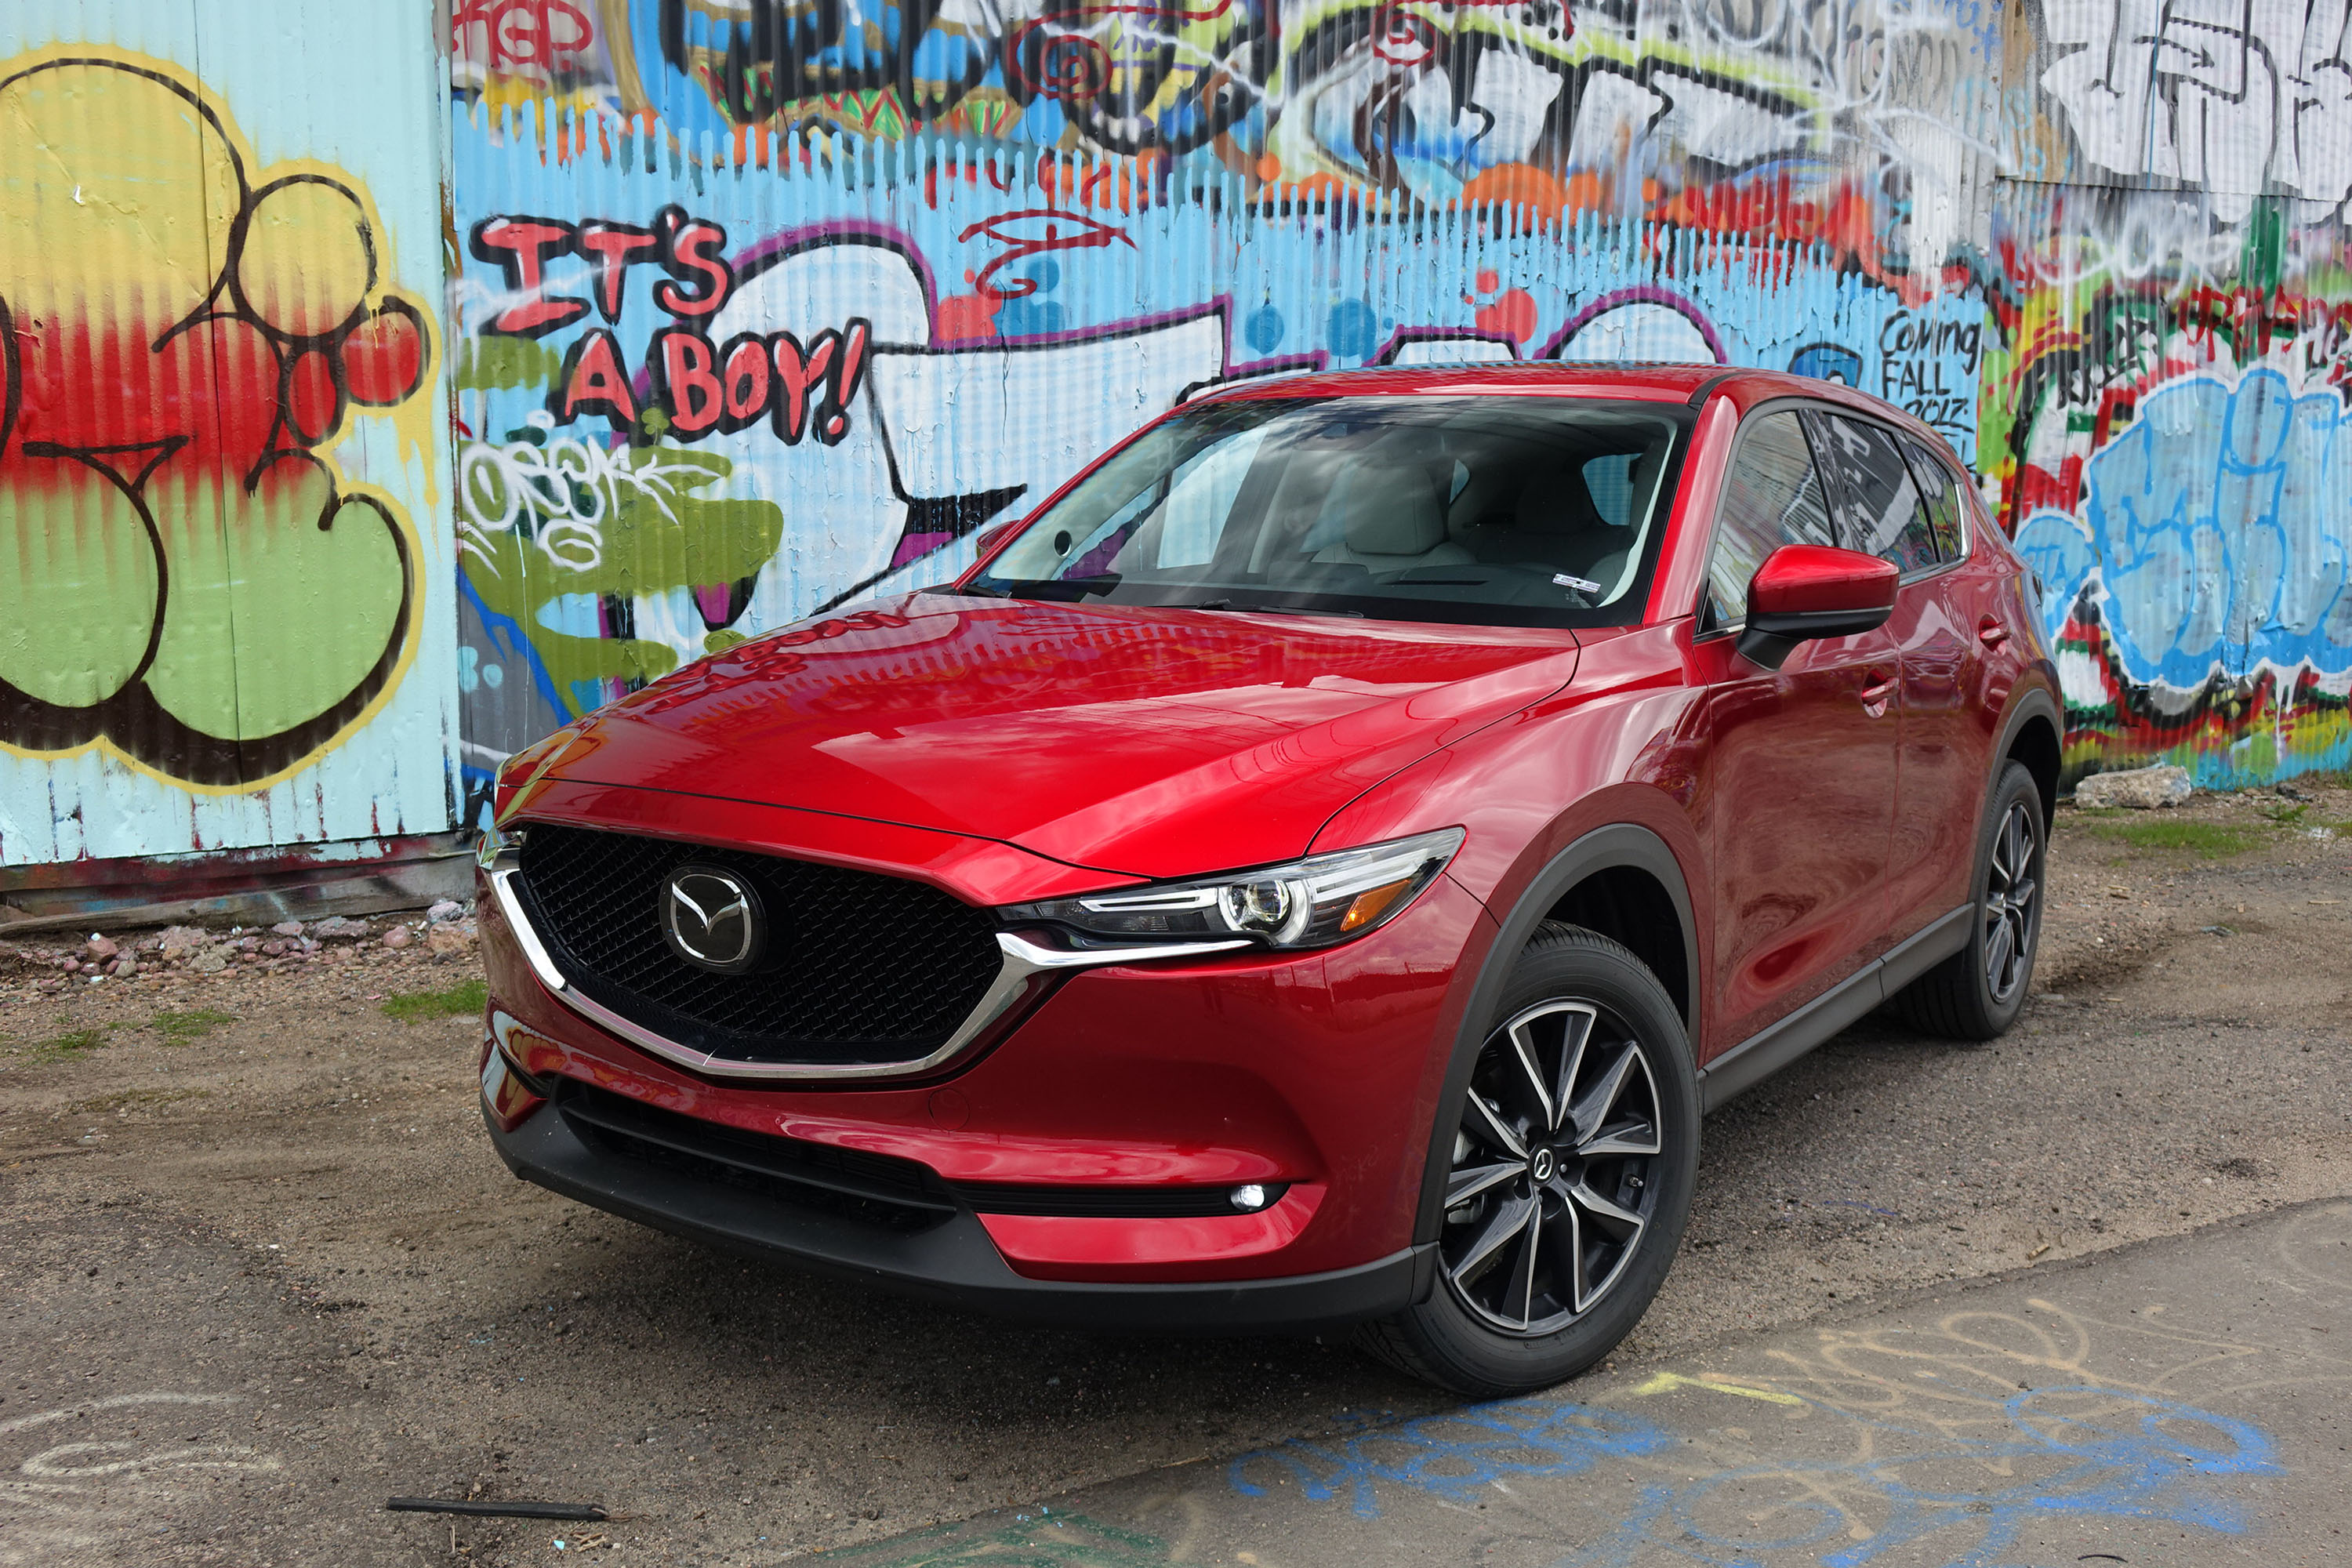 Mazda exec: engines can get cleaner, EVs will die without subsidies